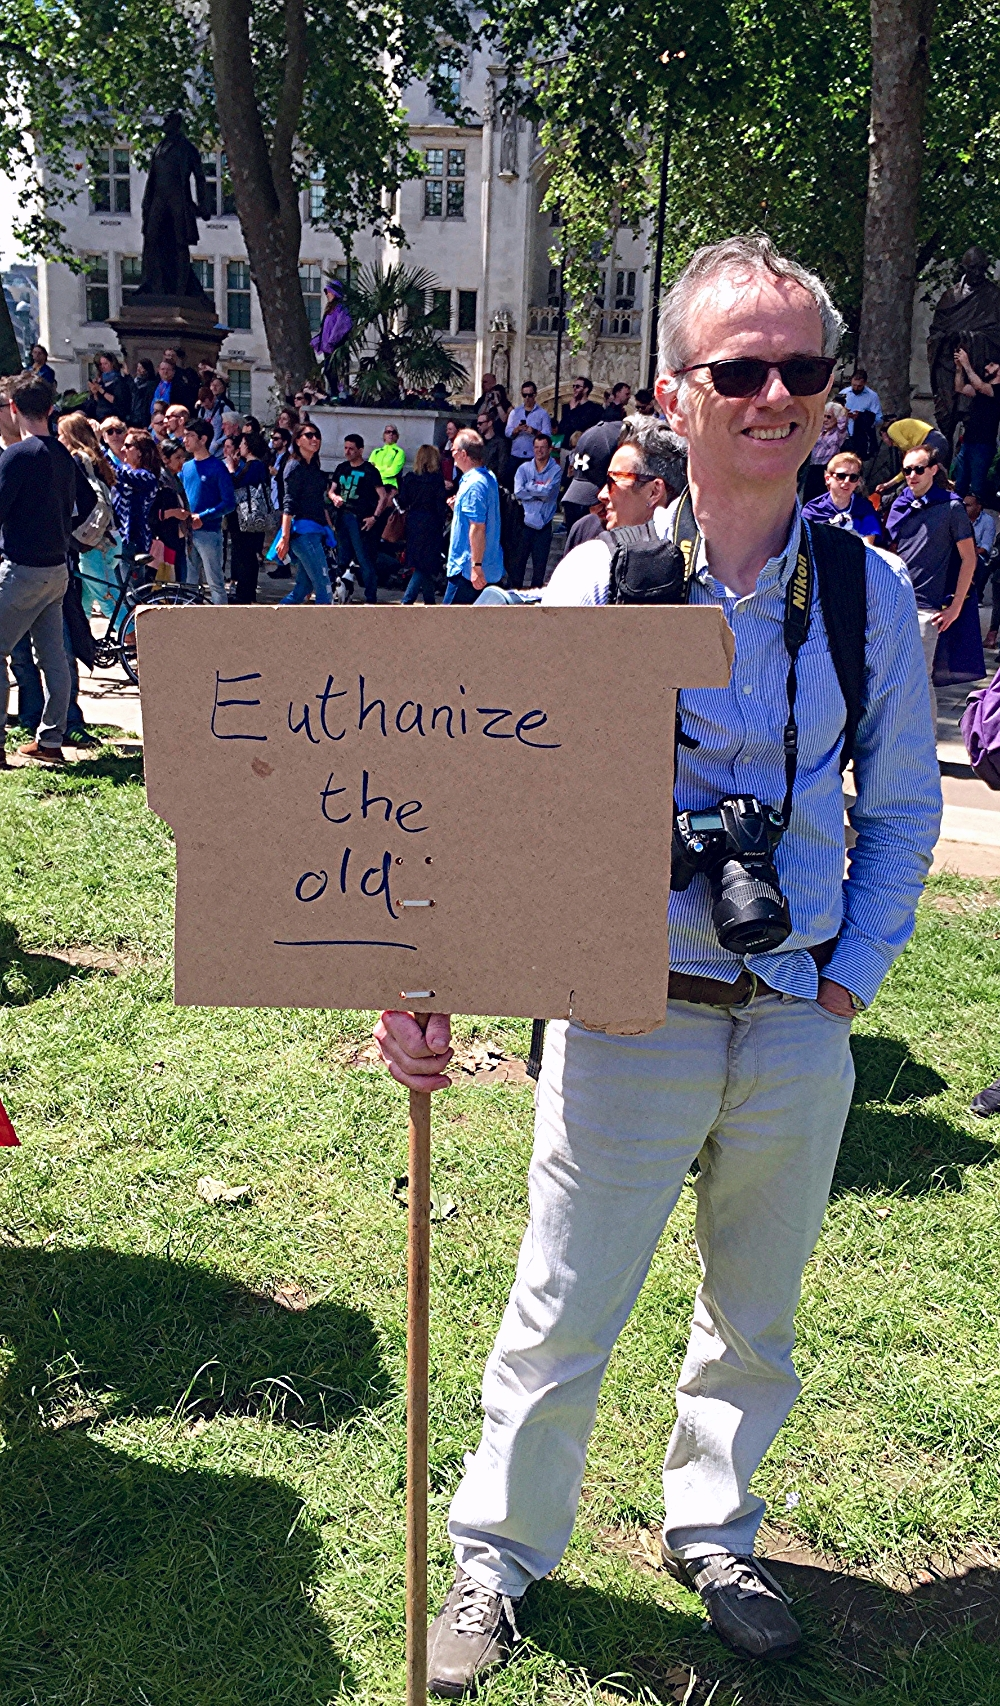 March for Europe. Euthanize The Old.